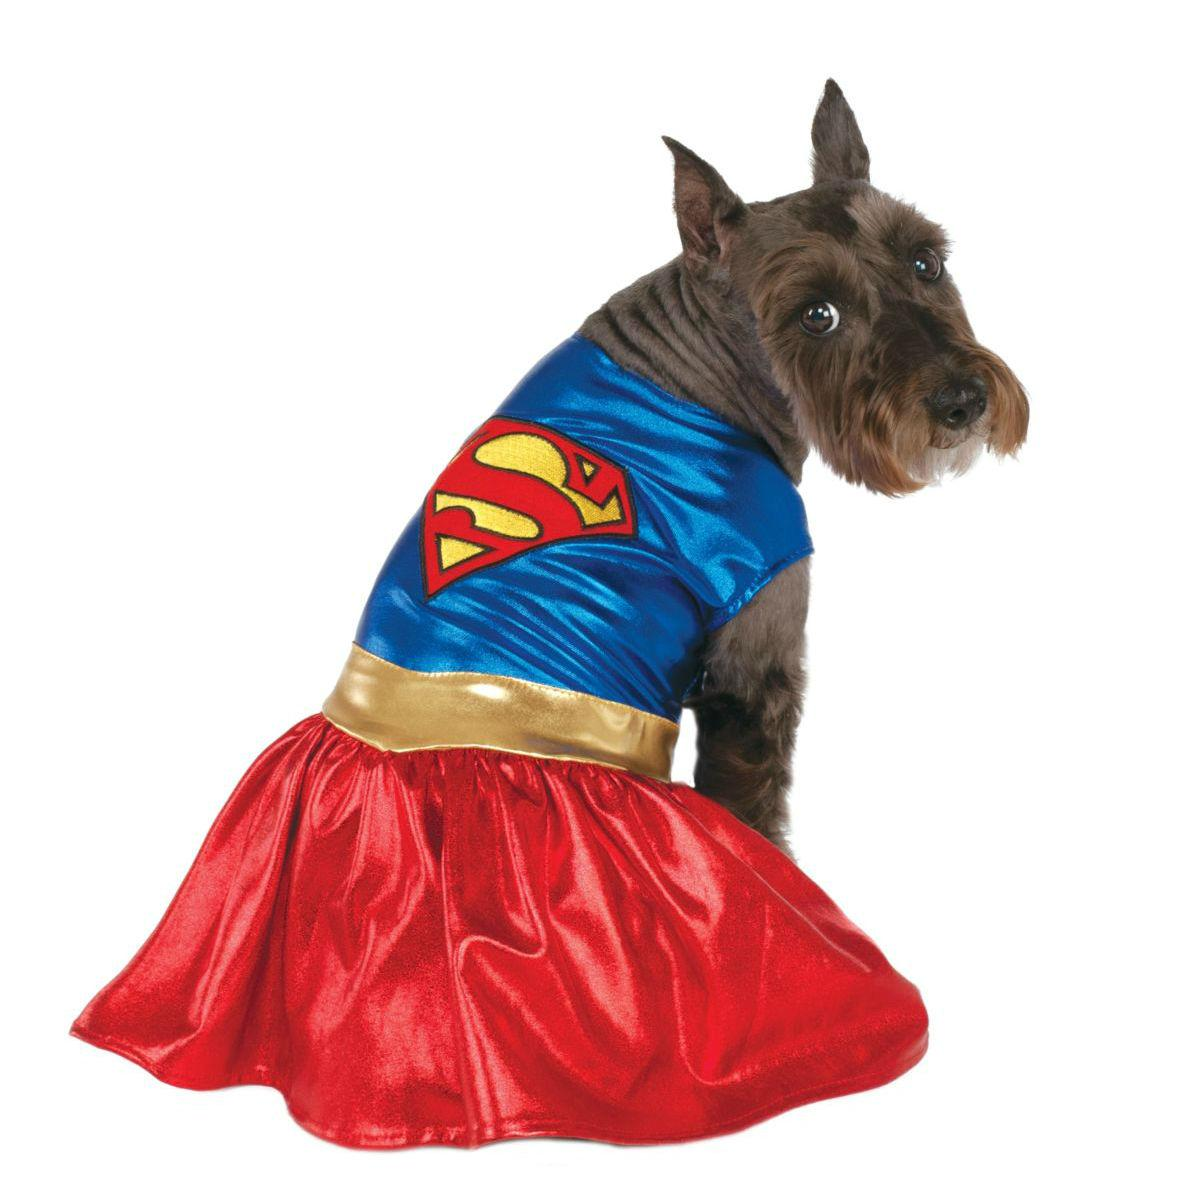 Supergirl Dress Dog Costume by Rubies